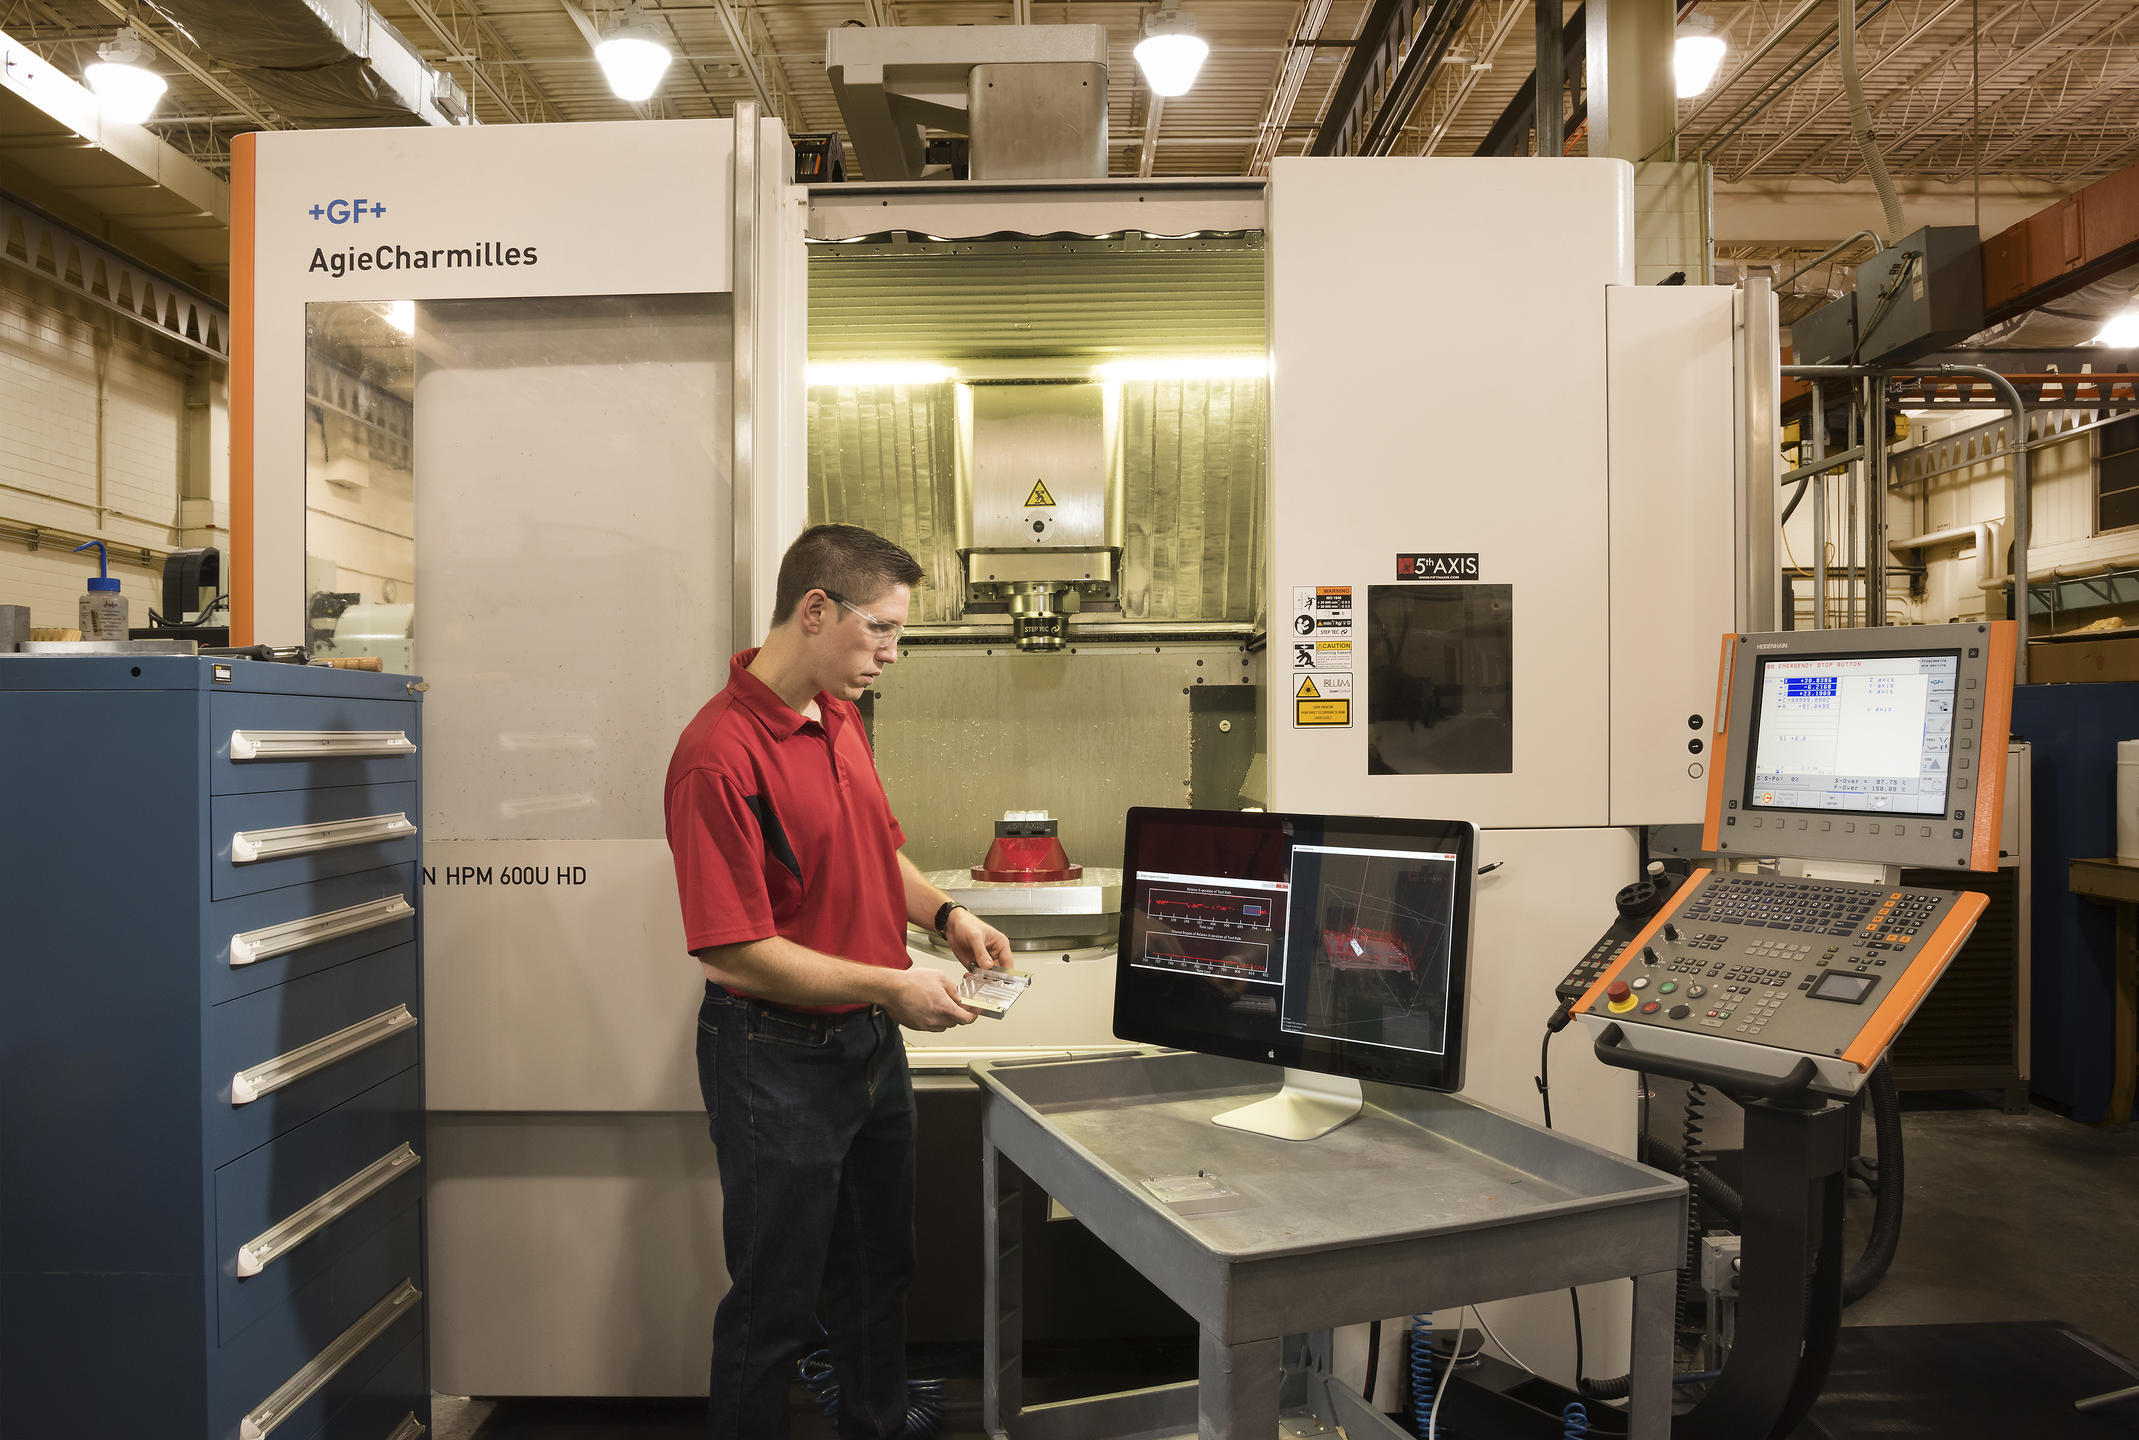 NIST researcher Tom Hedberg in a machine shop with computer monitor displaying CAD image